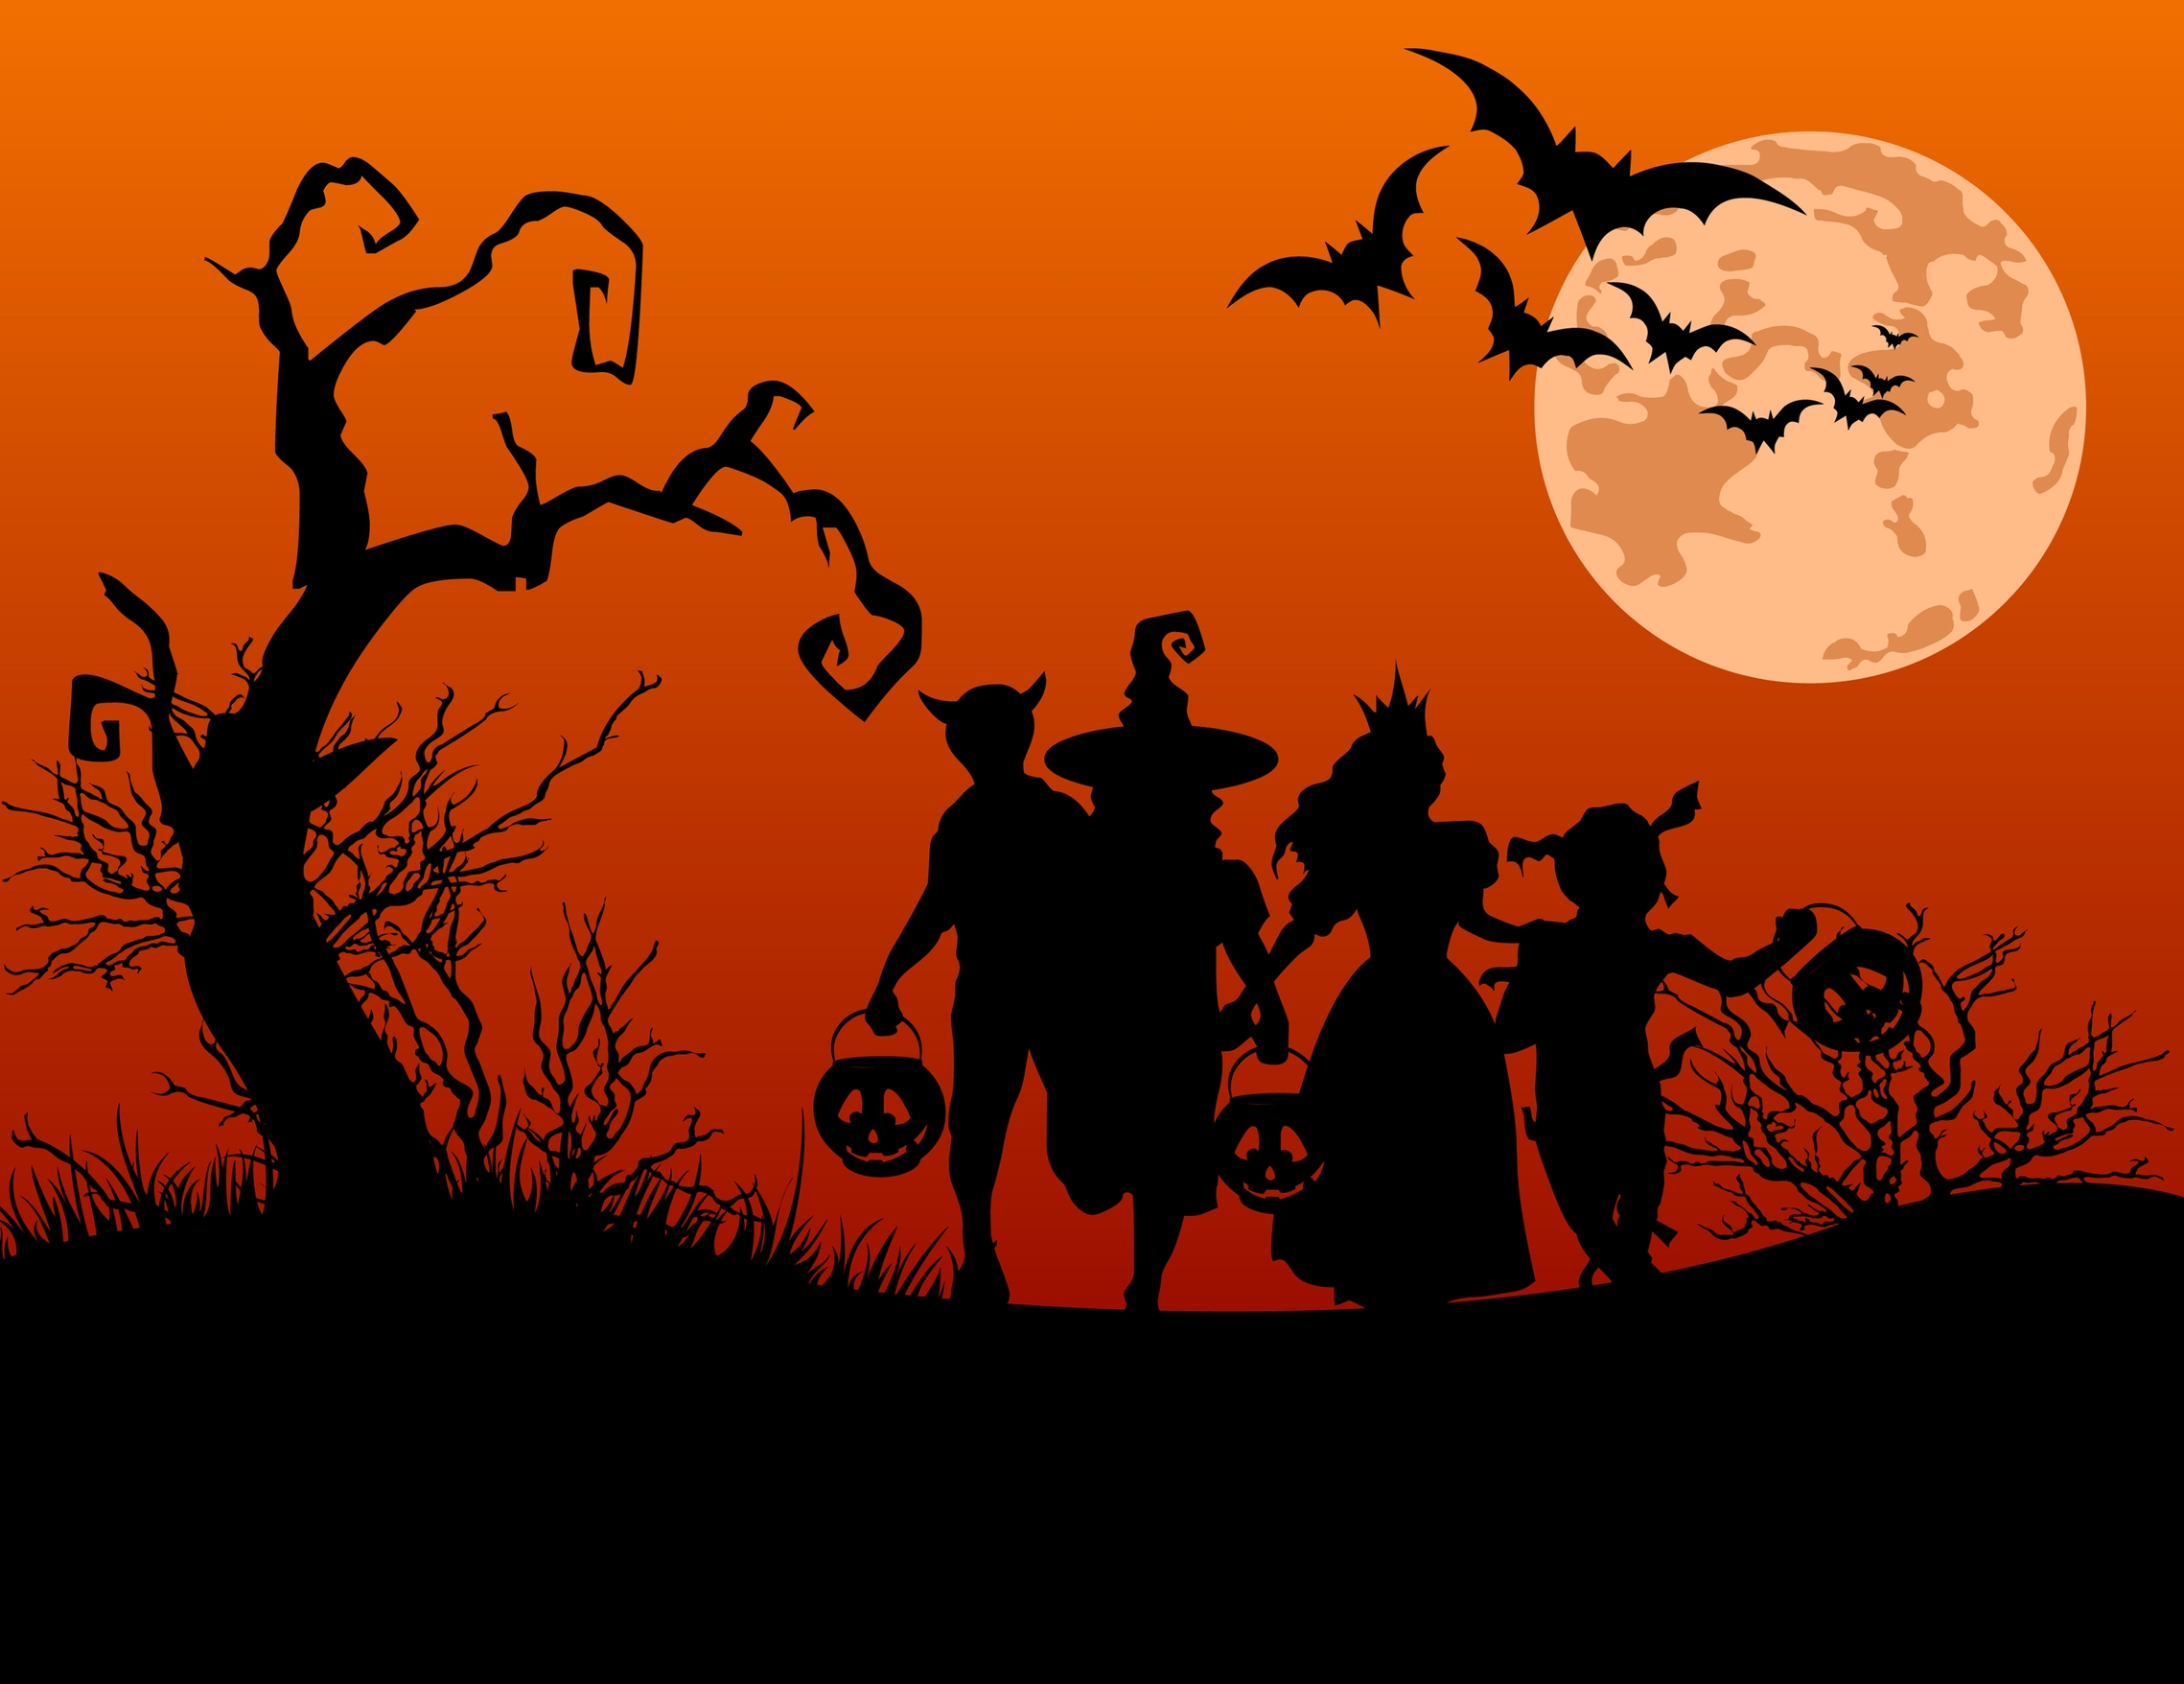 image of costumed people and craggy tree in black against orange sky